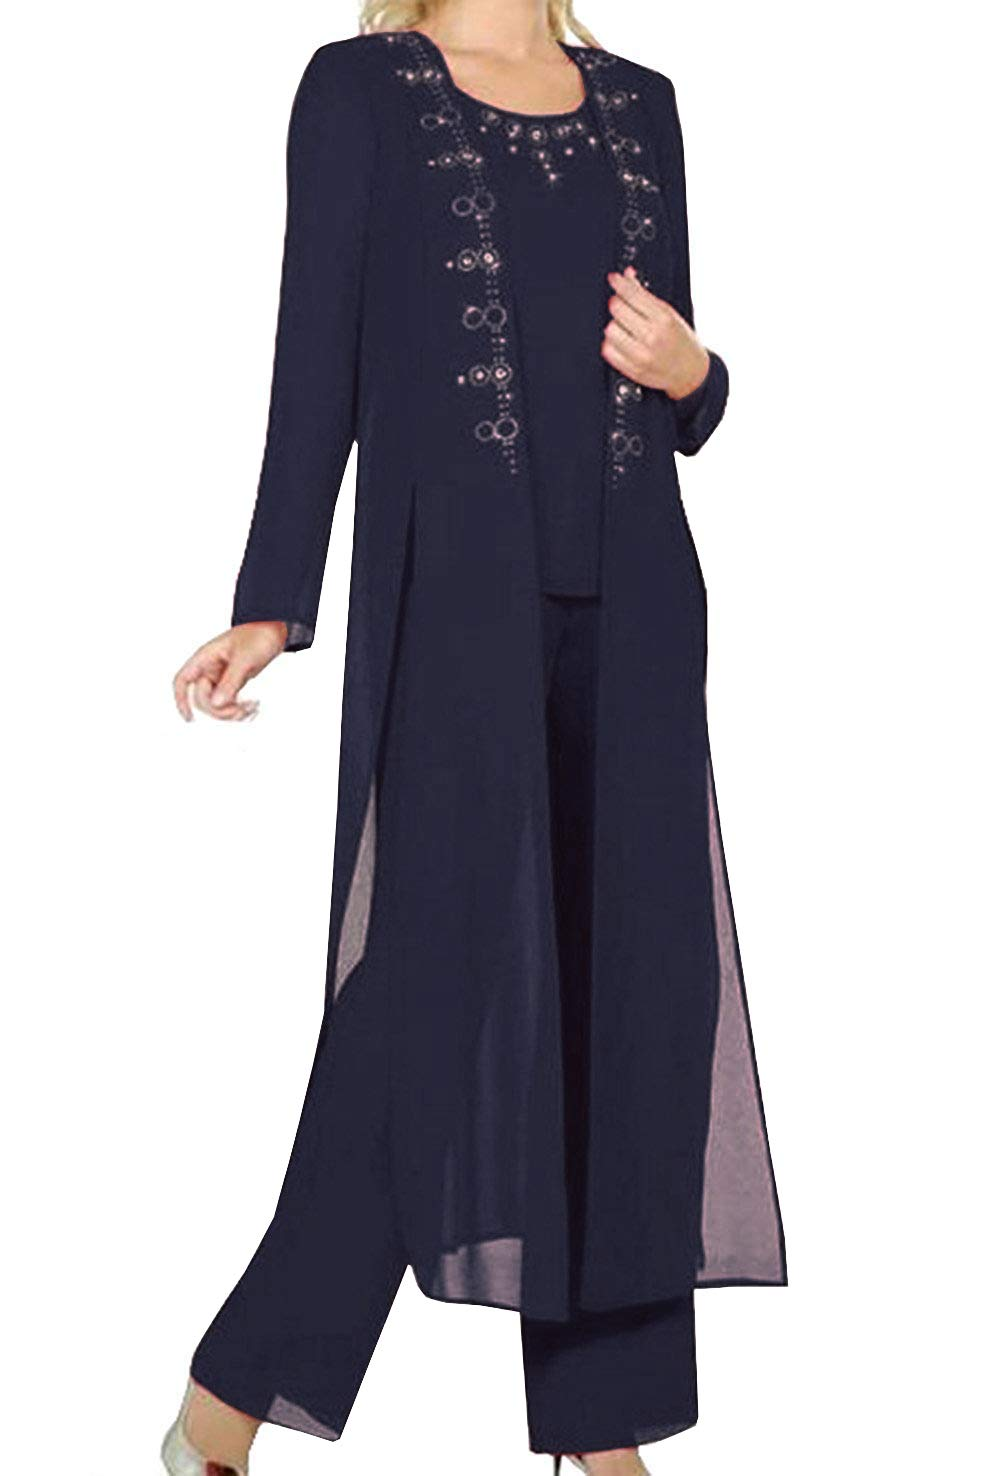 0a2ca5418d1 Fitty Lell Women s Navy Chiffon 3-Pieces Mother of Bride Pant Suit Beaded  Women Formal Gowns(US16